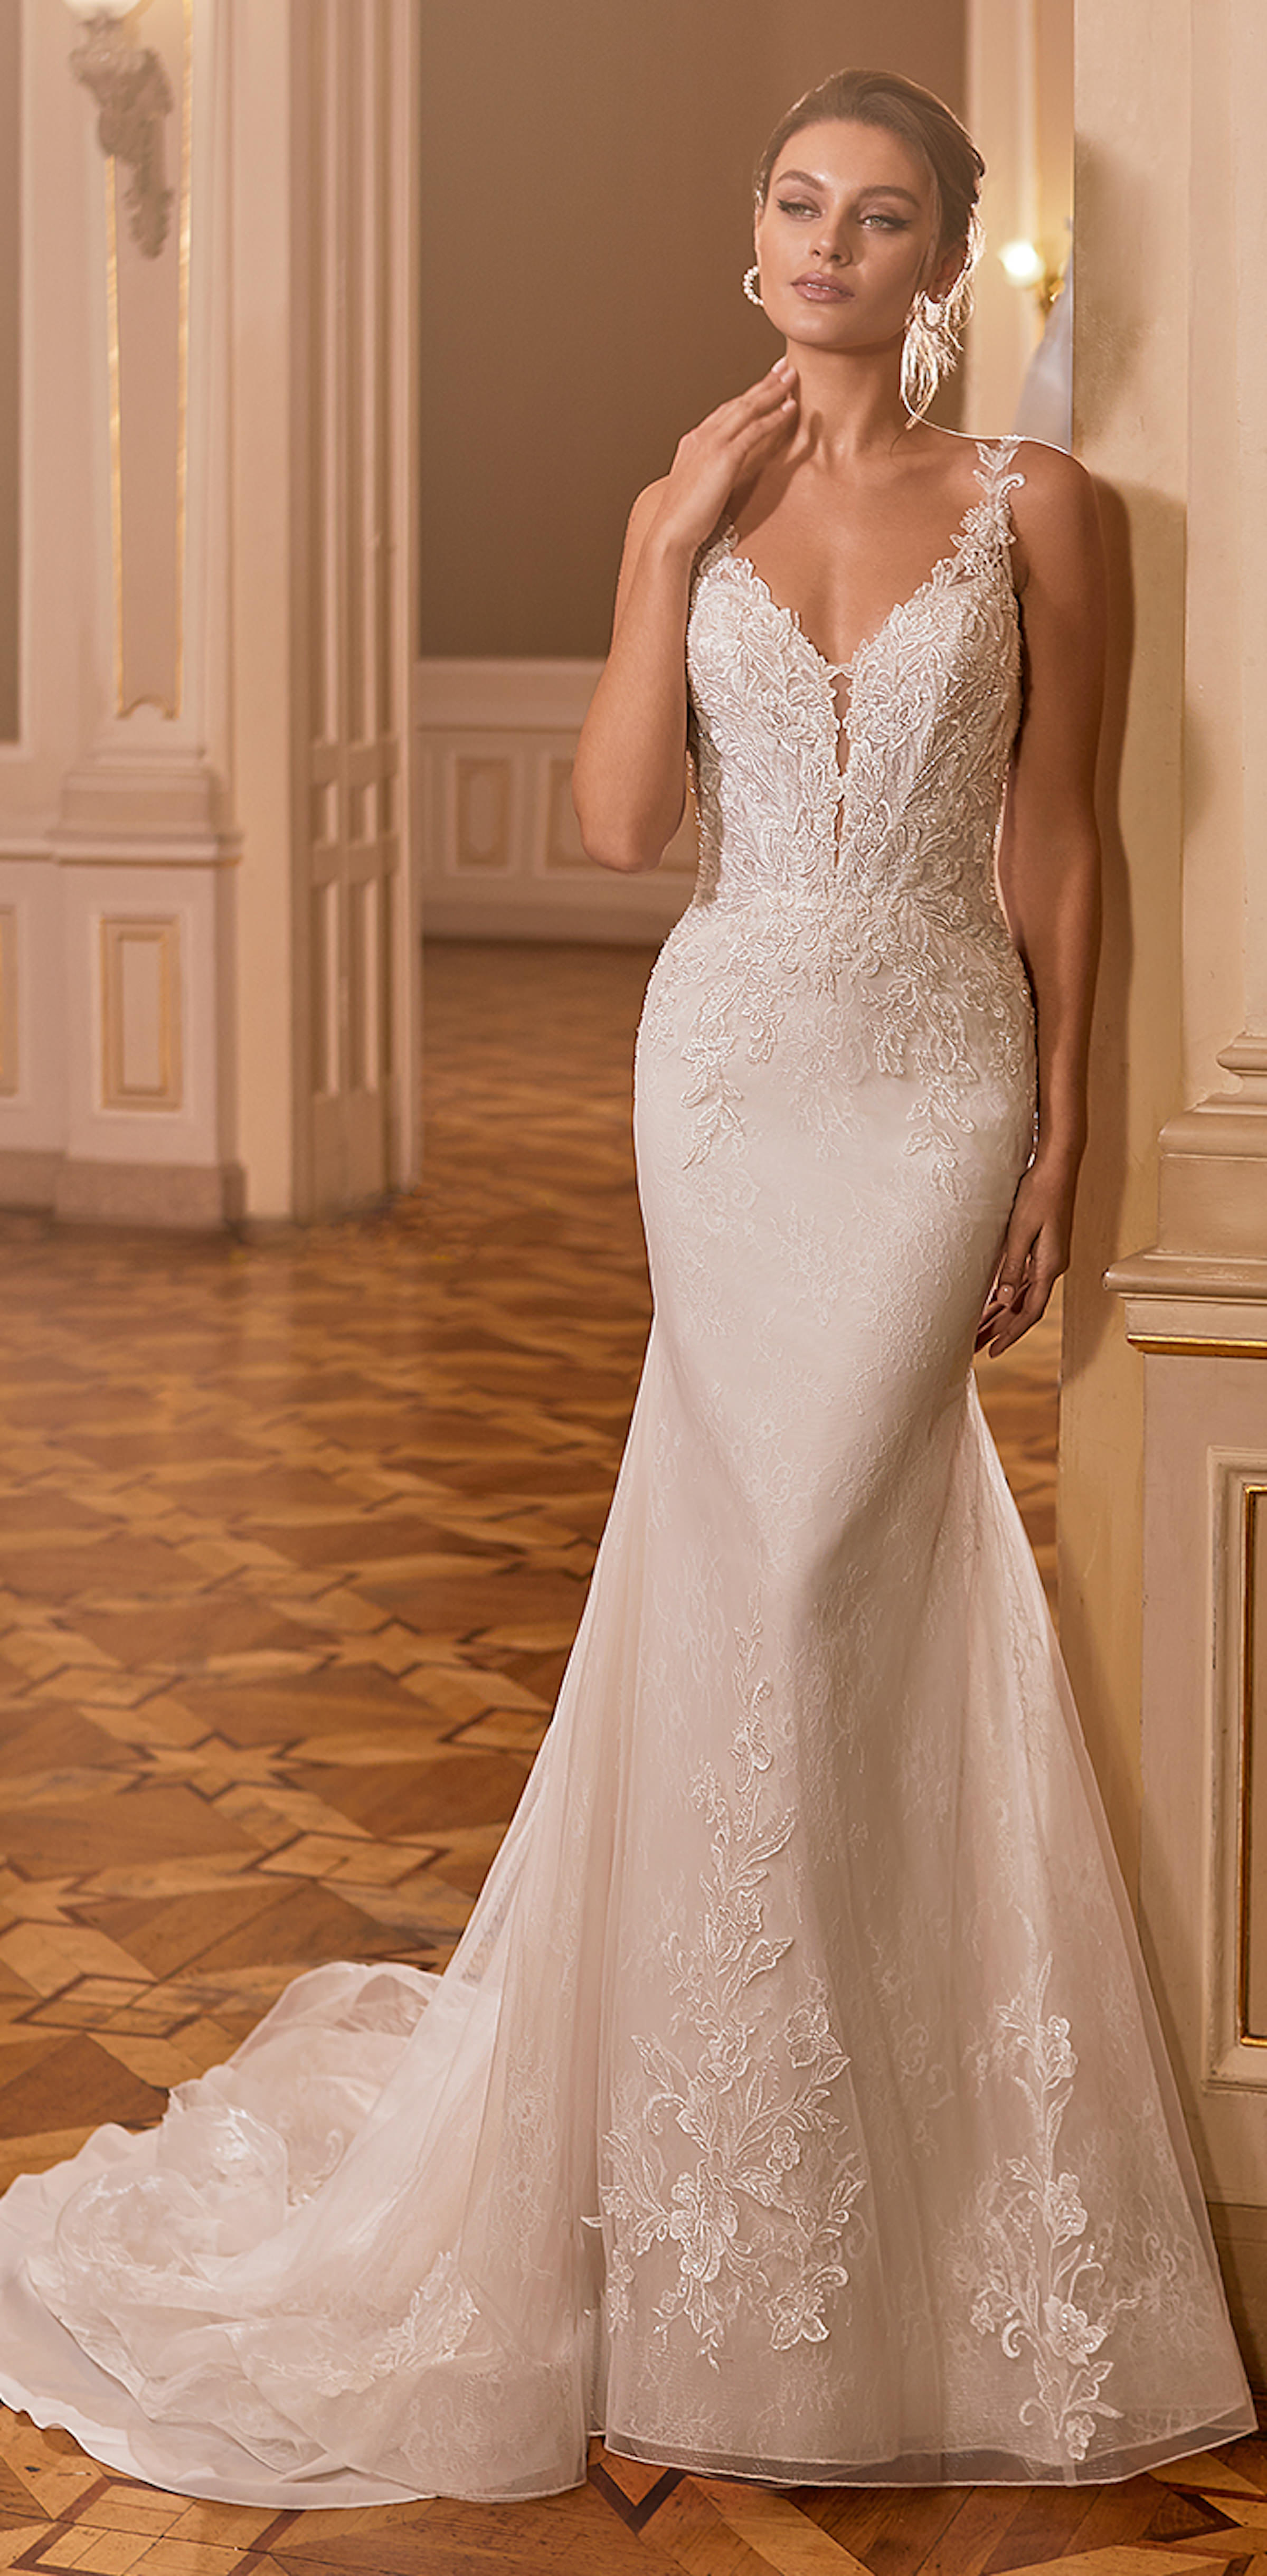 Gilded X Moonlight Collection Fall 2021 Wedding Dresses - J6829